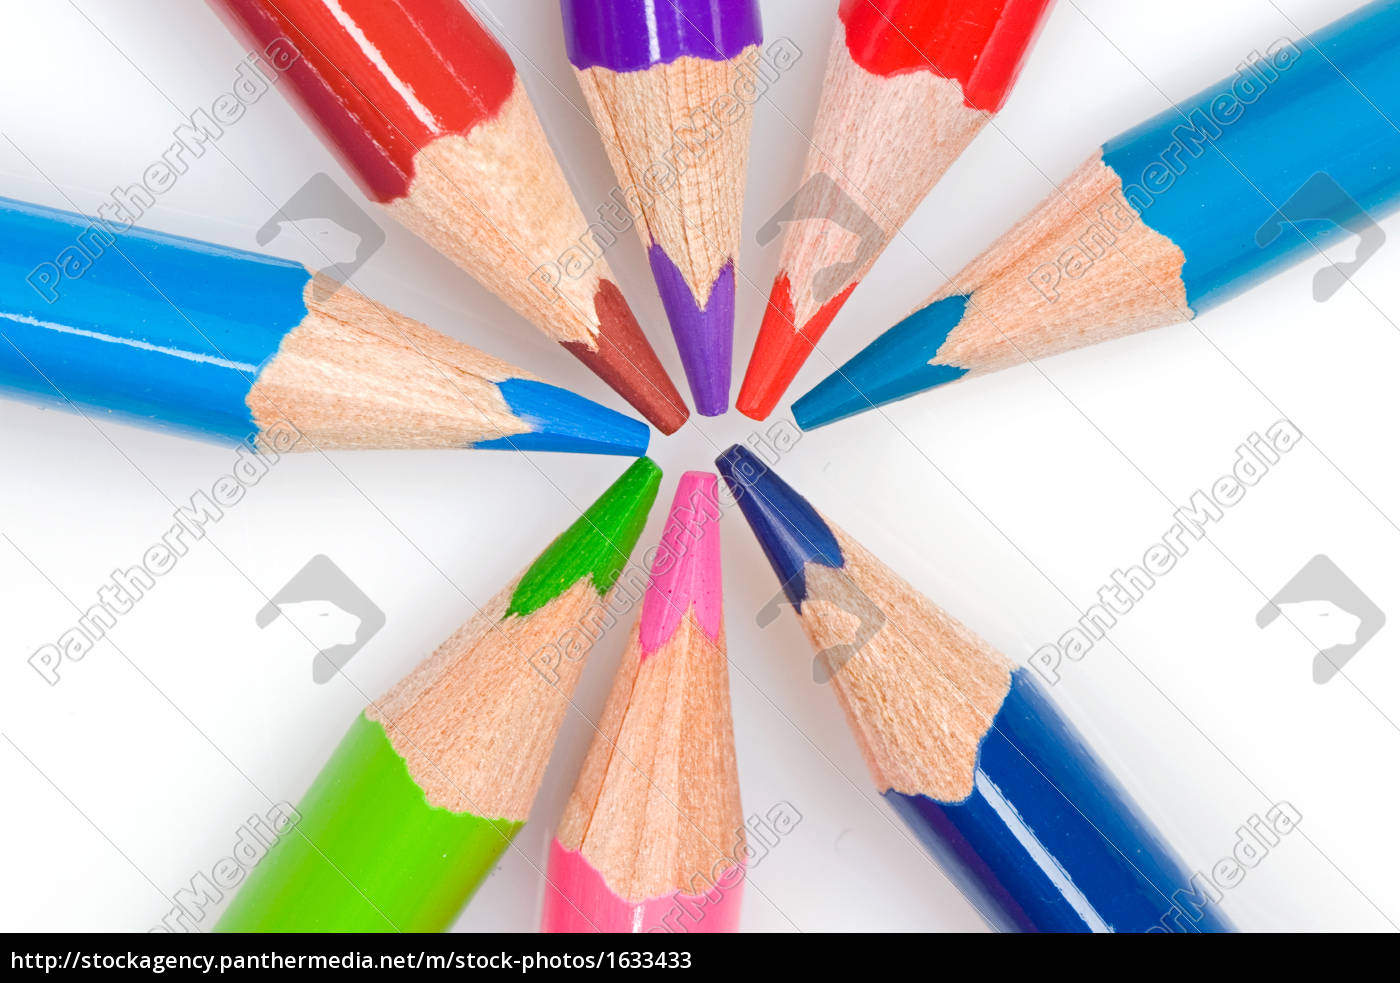 many, pencils, of, different, colors - 1633433